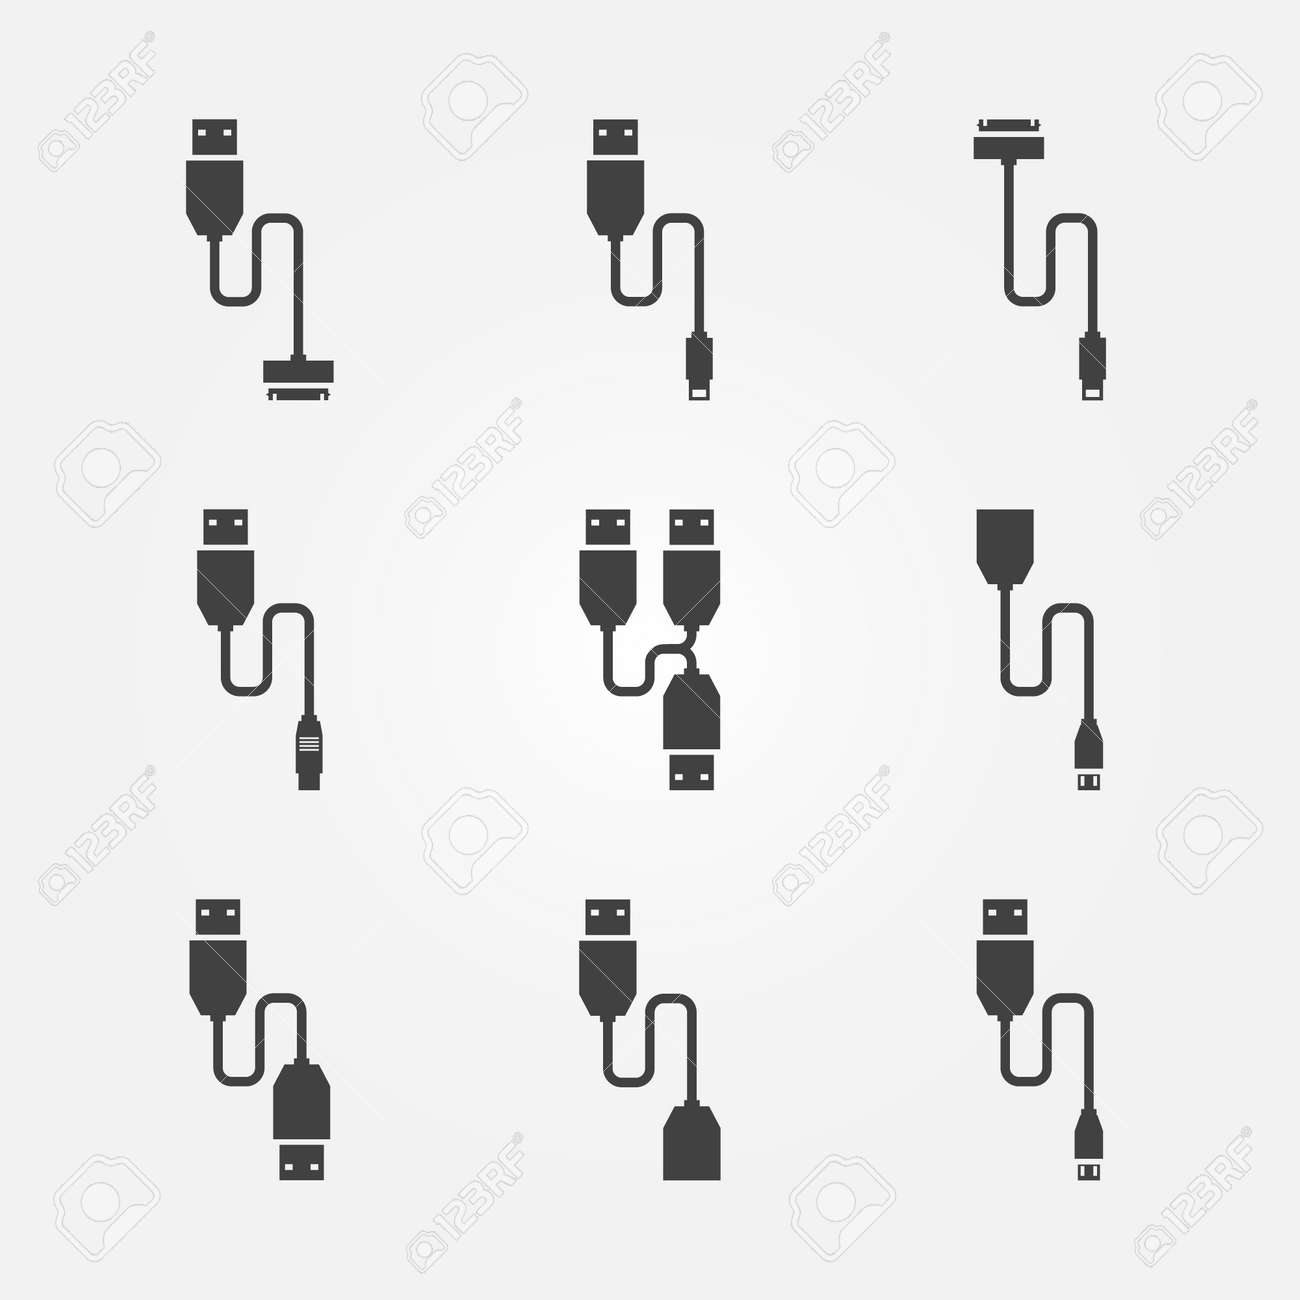 Usb cables icons vector black wire computer symbols royalty free usb cables icons vector black wire computer symbols stock vector 38675168 biocorpaavc Images